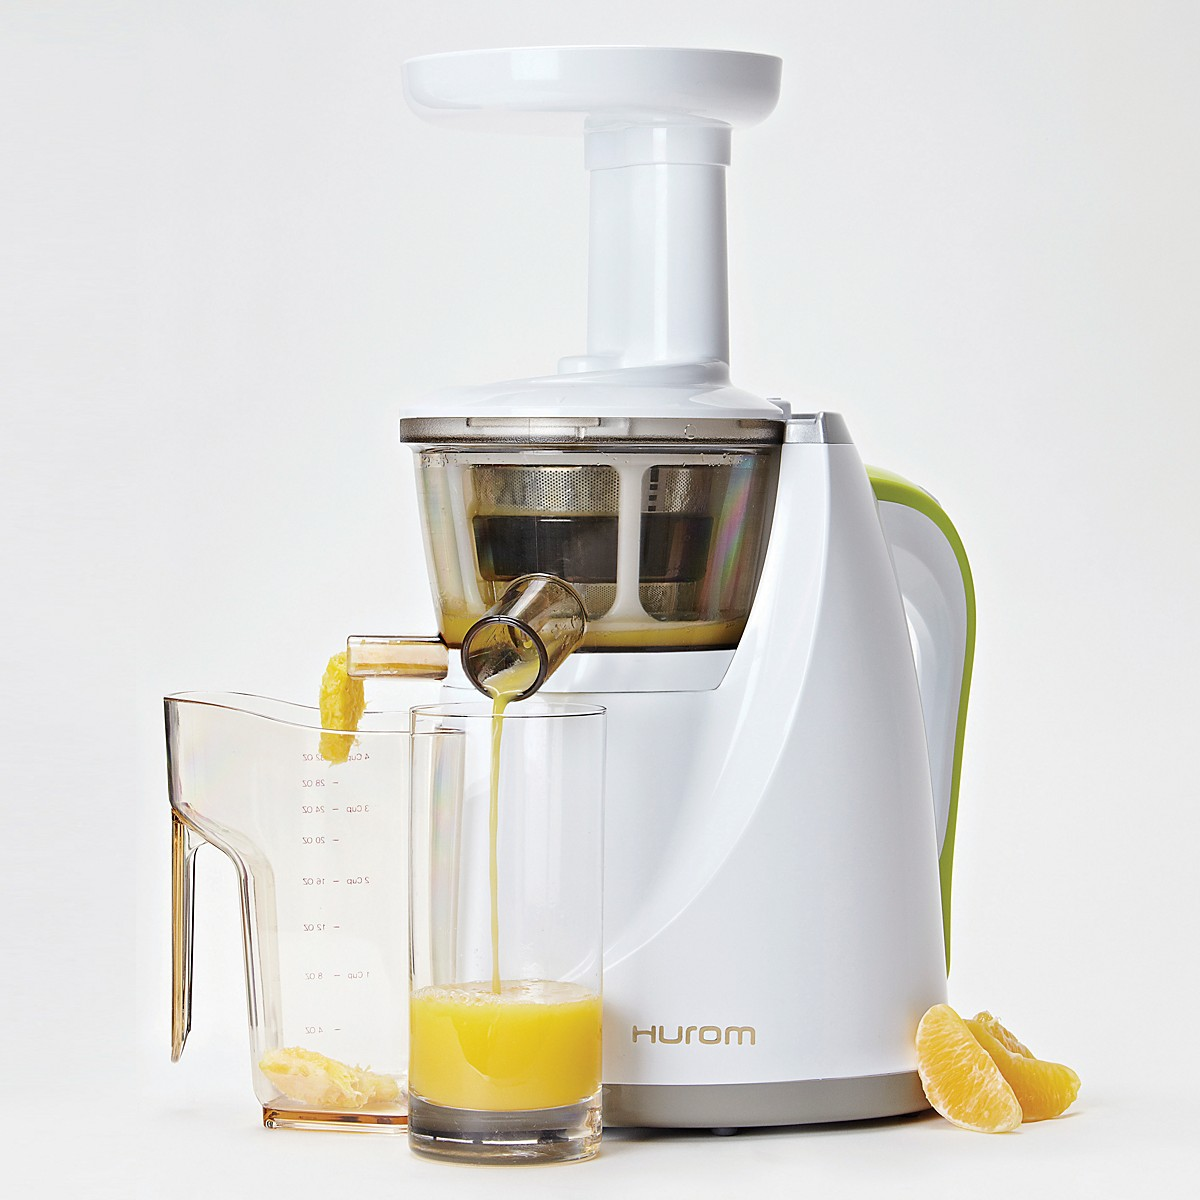 Hurom Slow Juicer Unterschiede : The Wish List 2014 Our favourite kitchen appliances for chefs and avid home cooks